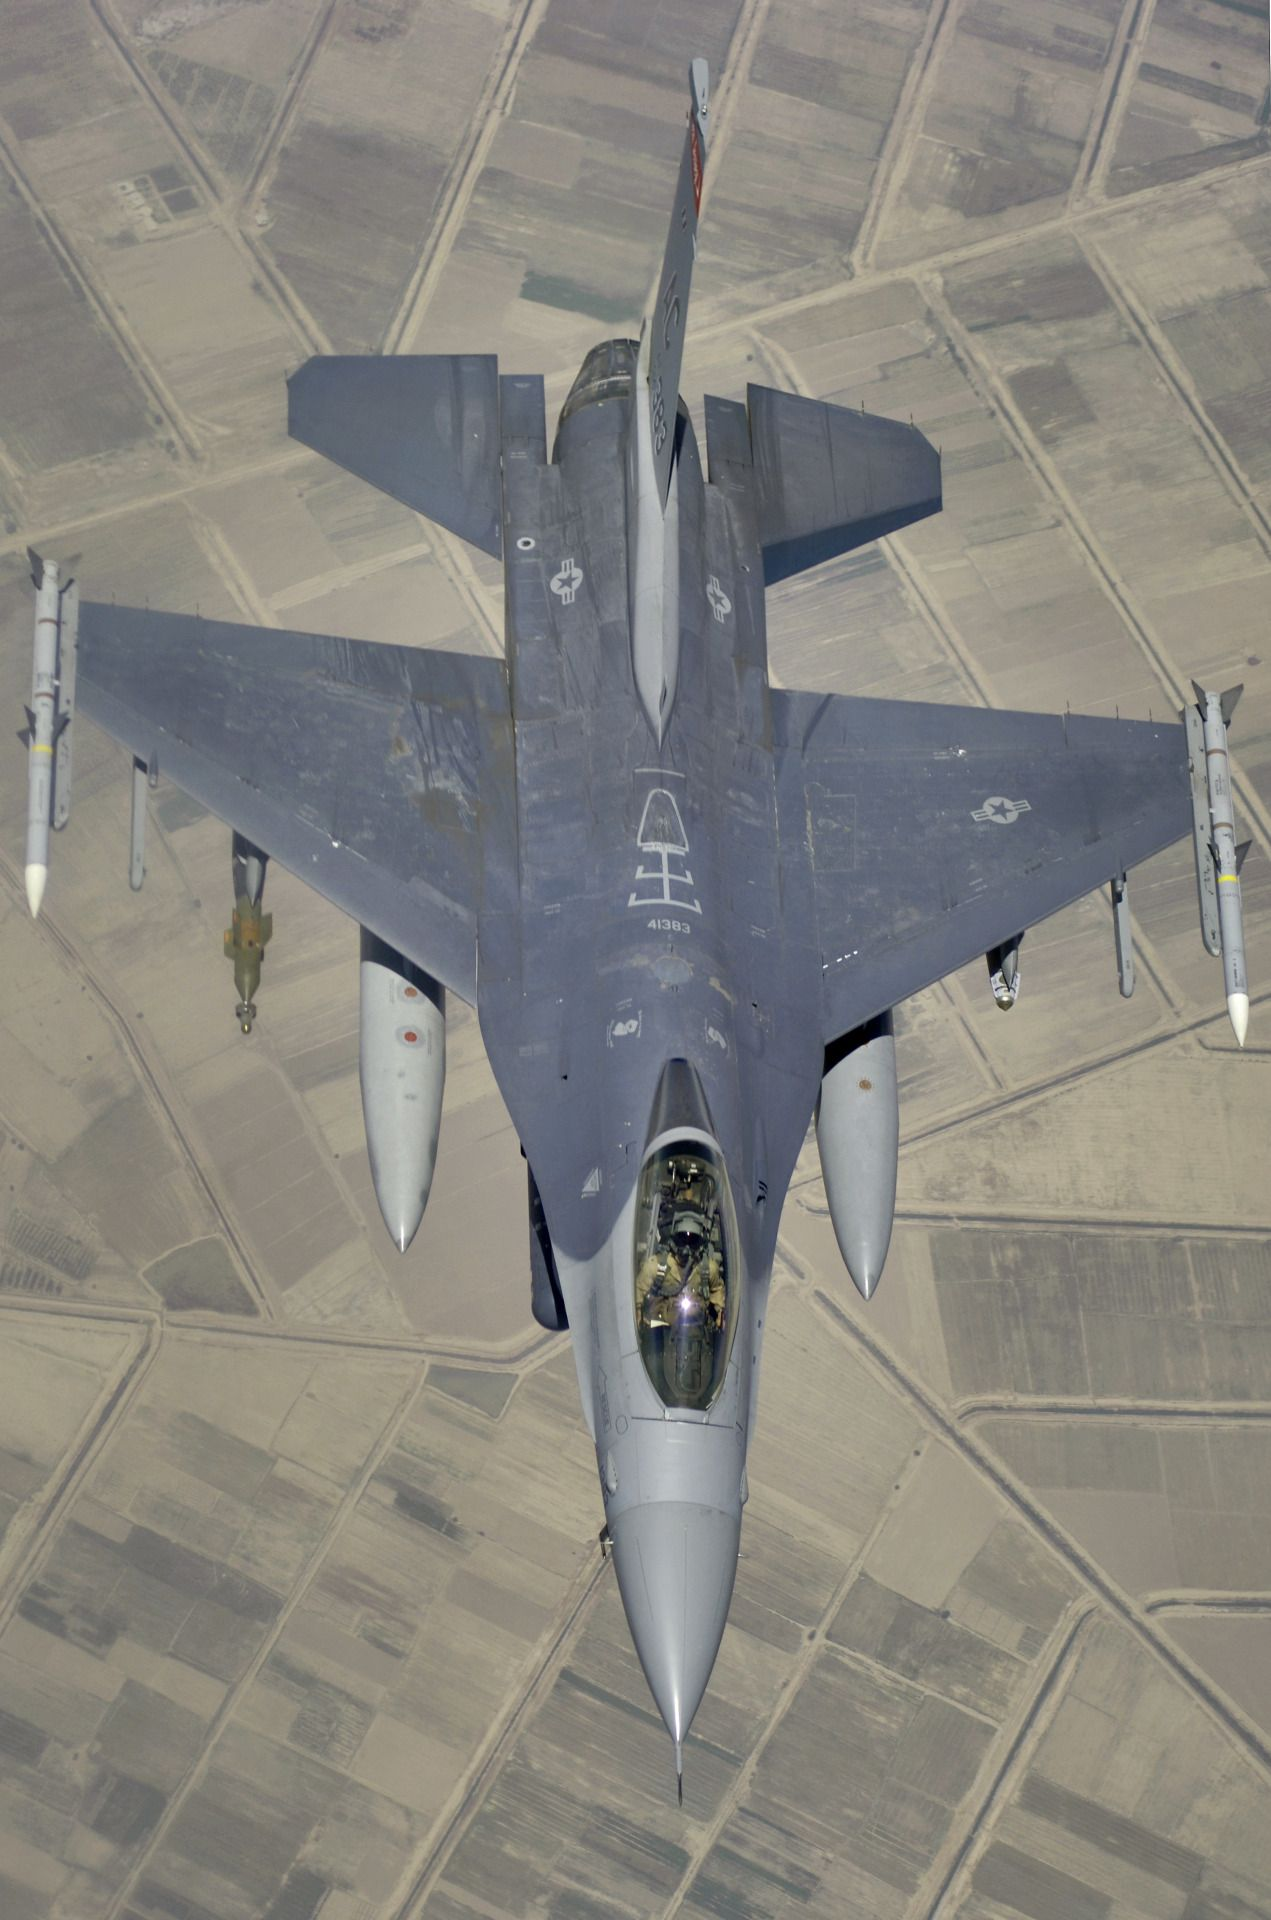 177thfw F 16c Fighting Falcon Over Central Iraq 14 May 2006 The Fighter Is Deployed To Balad Air Base Fighter Aircraft Airplane Fighter Military Aircraft